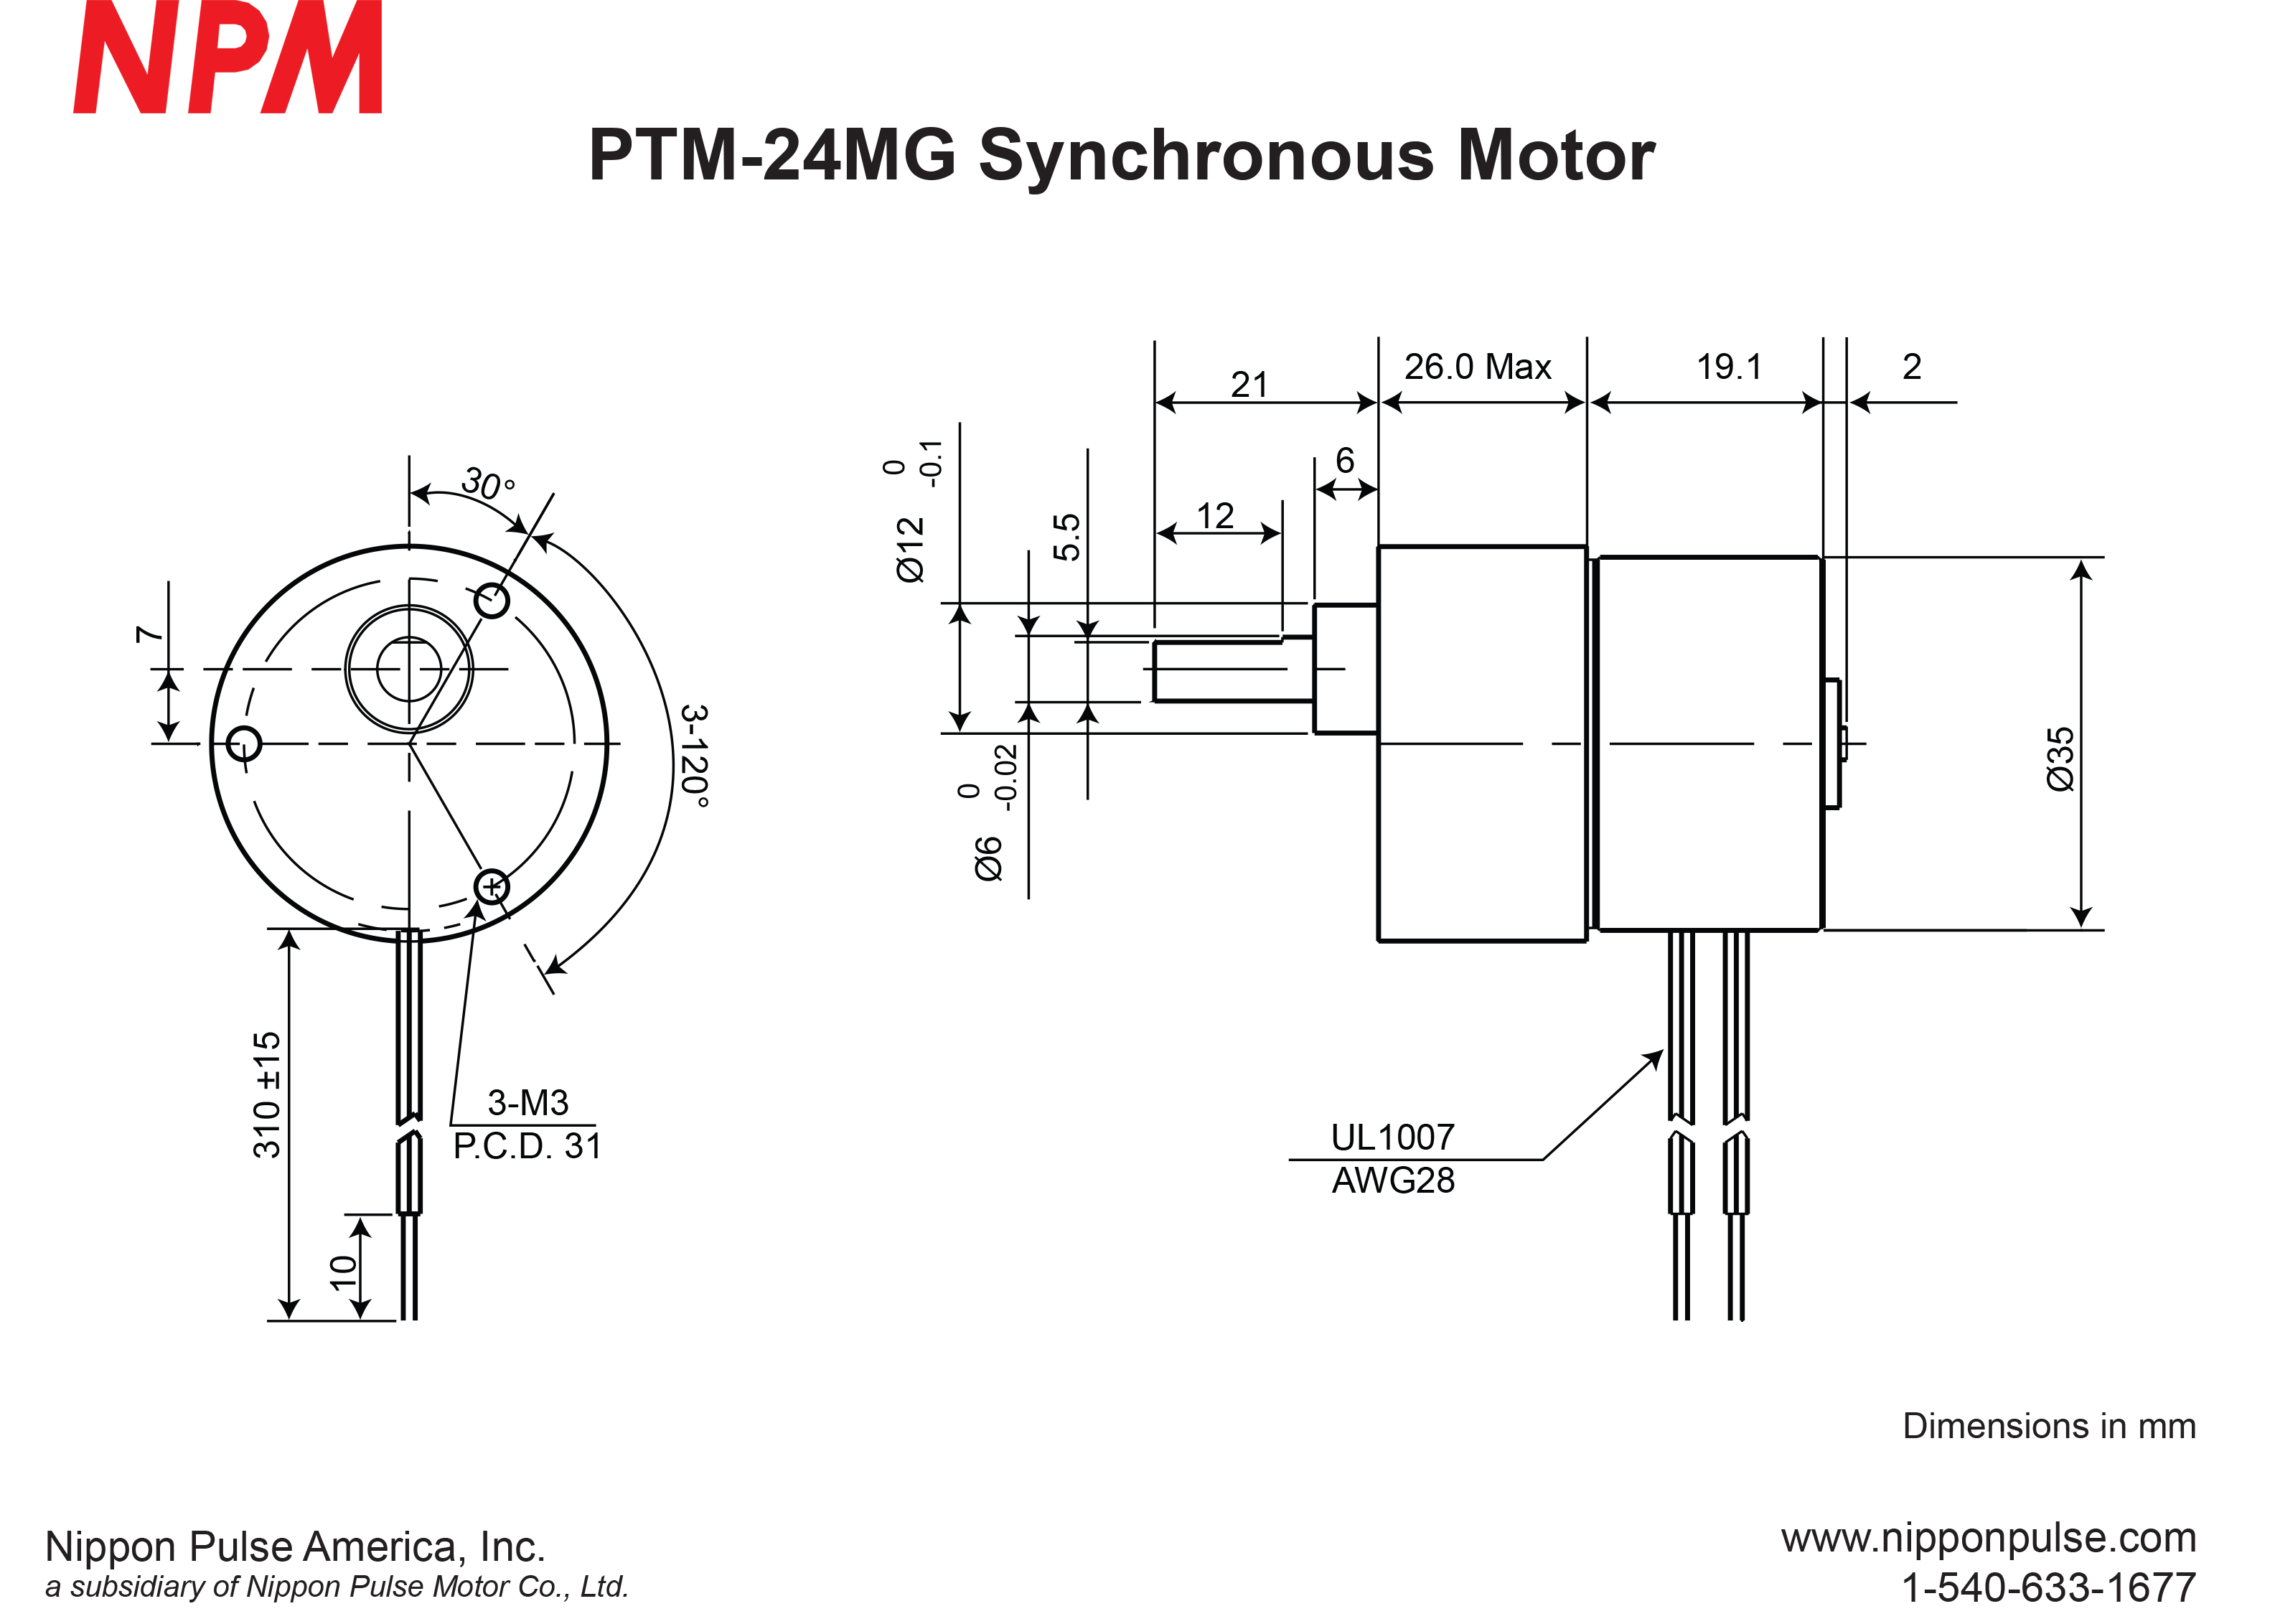 PTM-24MG(1/15) system drawing